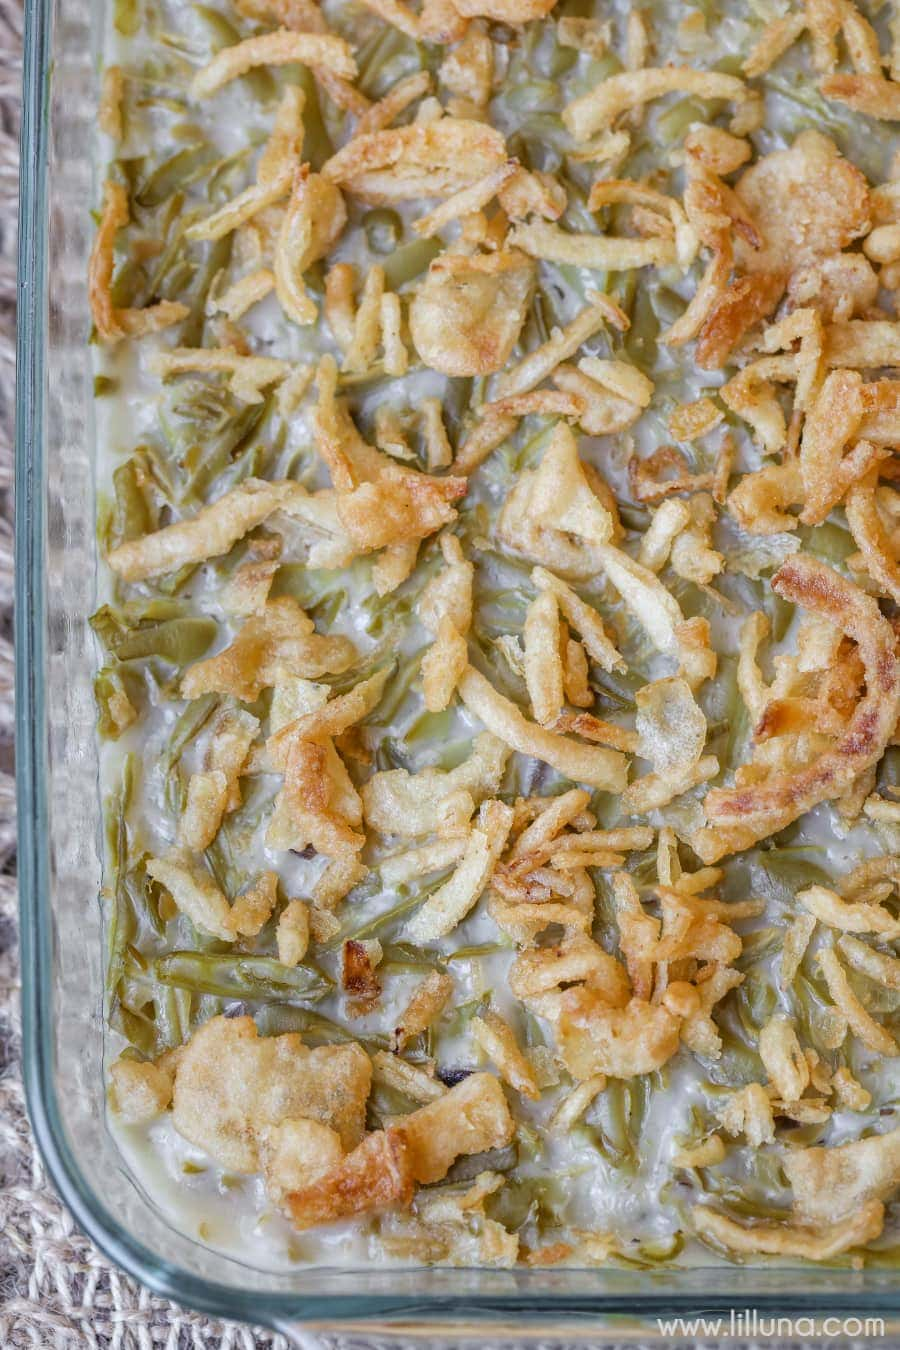 Classic Green Bean Casserole - a classic side dish for holiday meals or any dinner. They're simple, delicious and require only 4 ingredients!